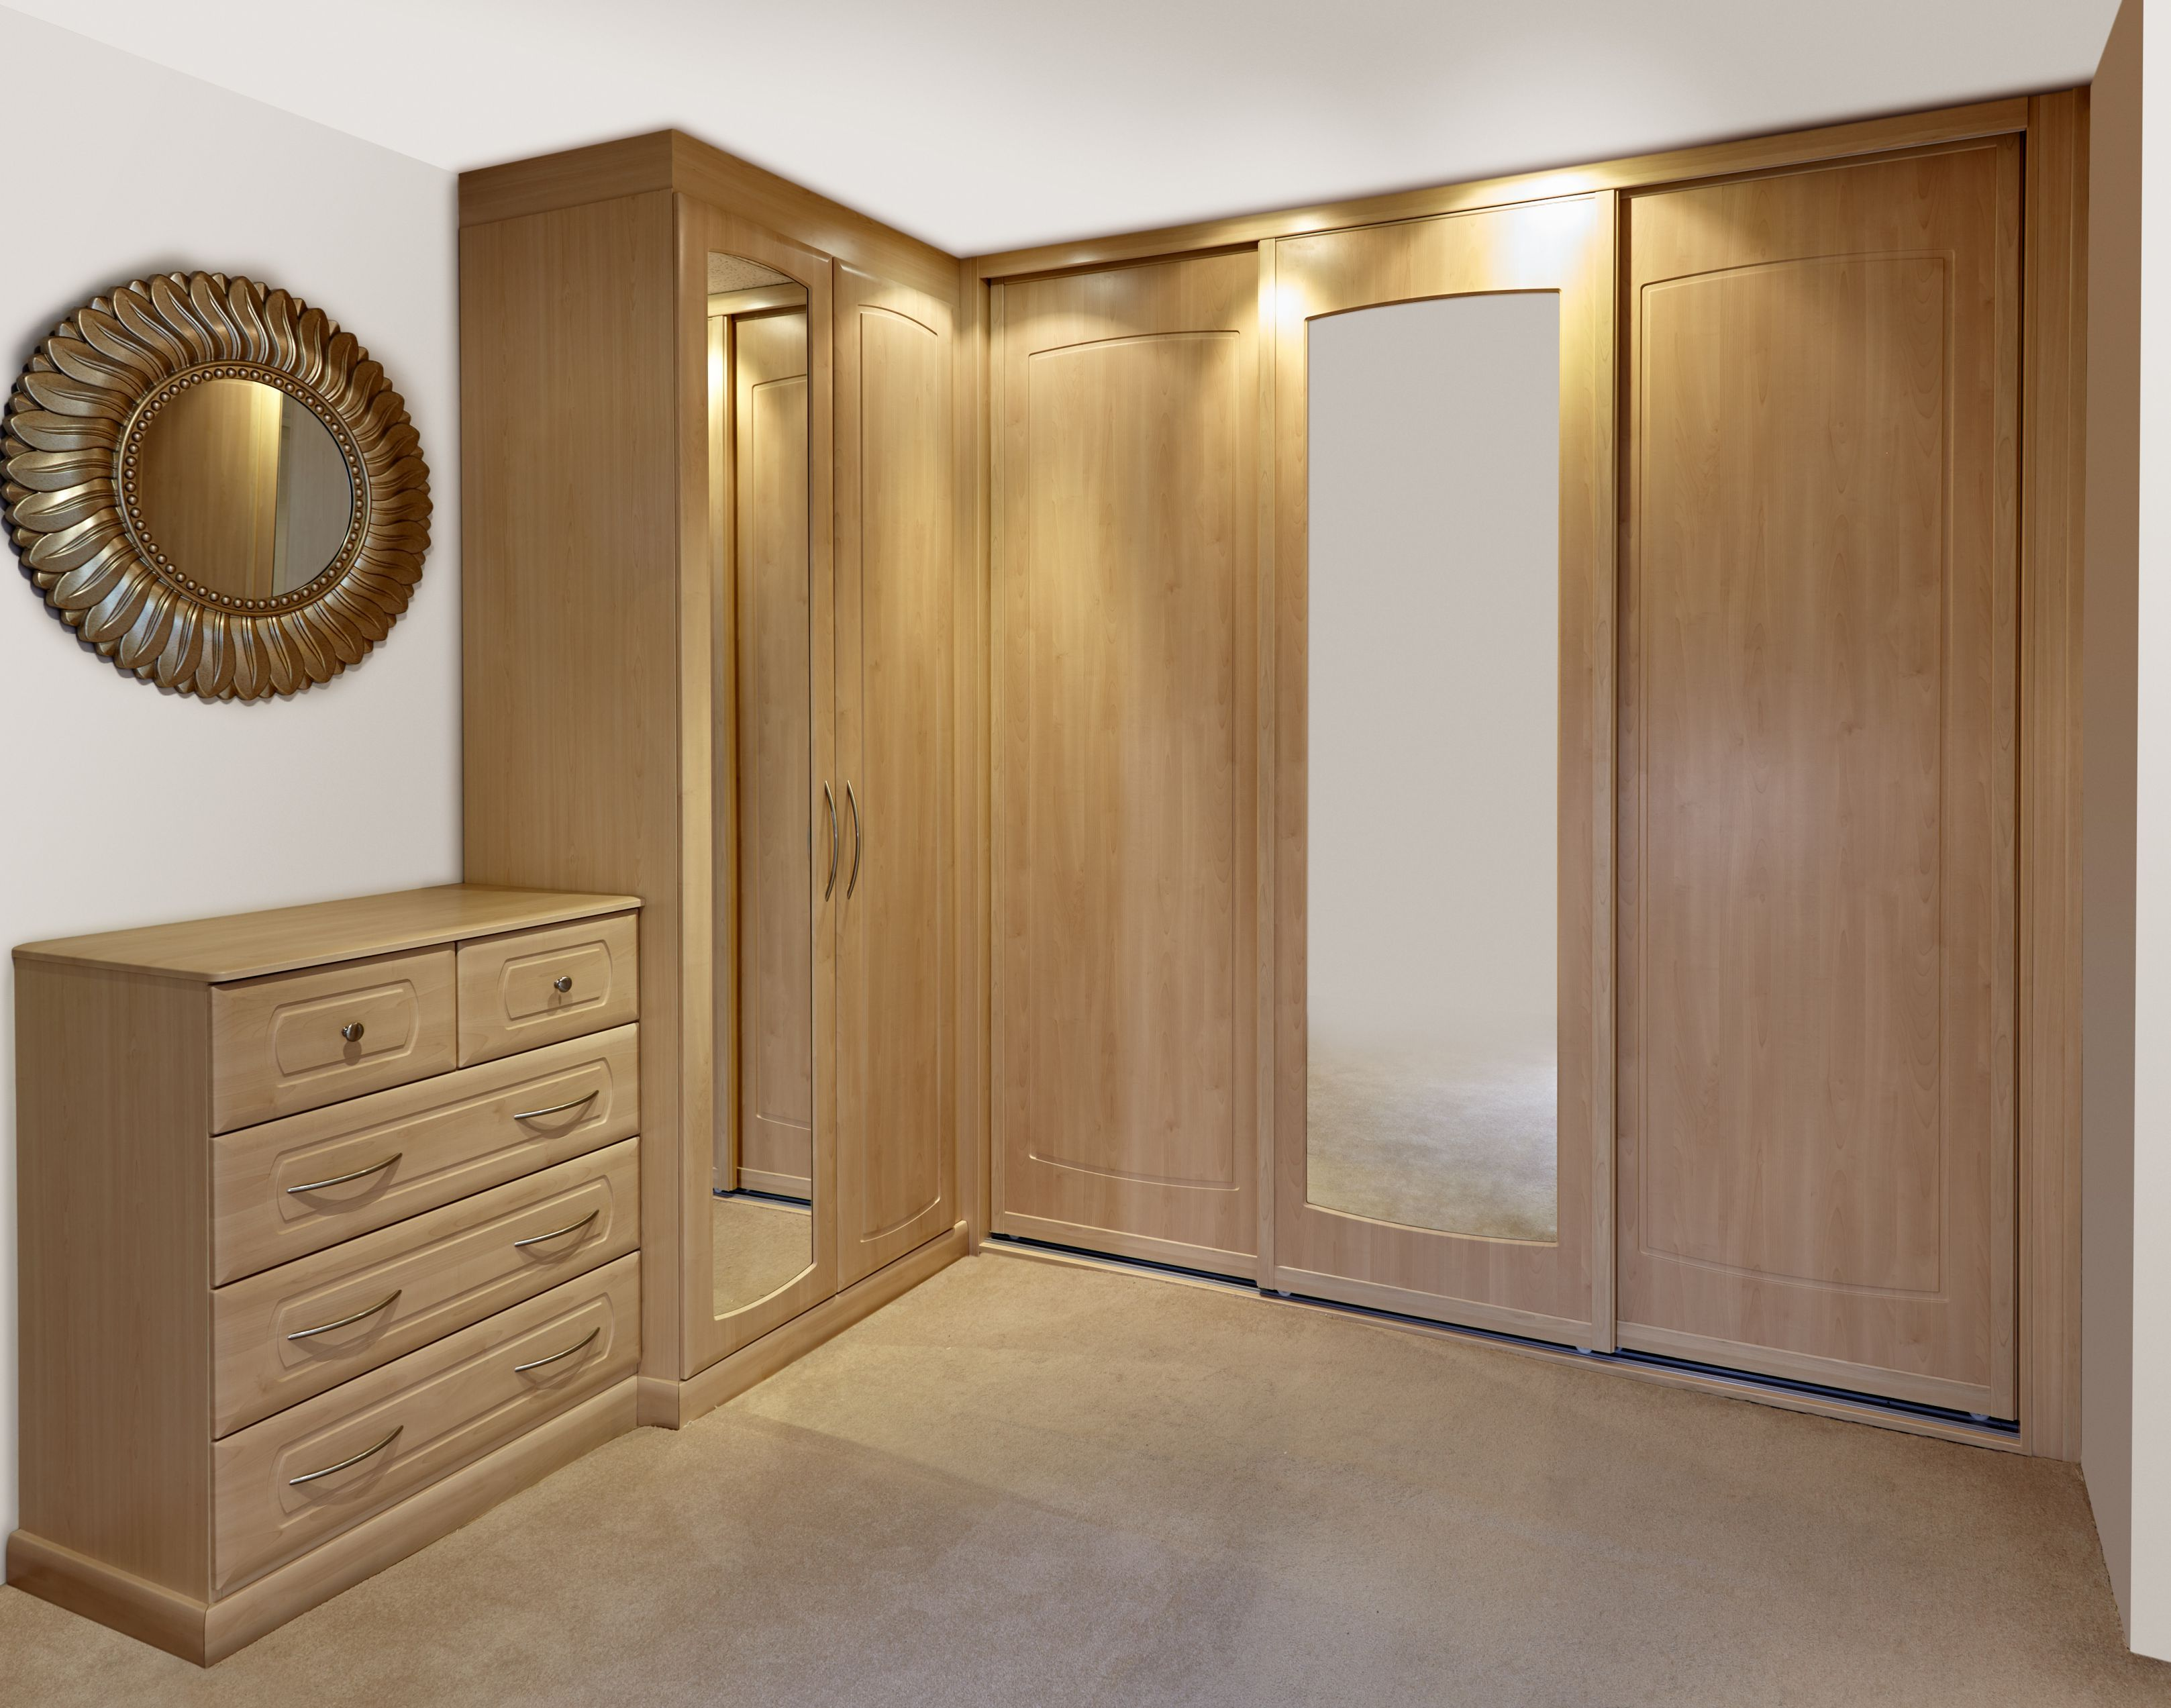 Built In Wardrobe Designs For Bedroom Amazing Fitted Bedroom Furniture Ltd Built Wardrobe Ideas Small Bespoke Design Inspiration